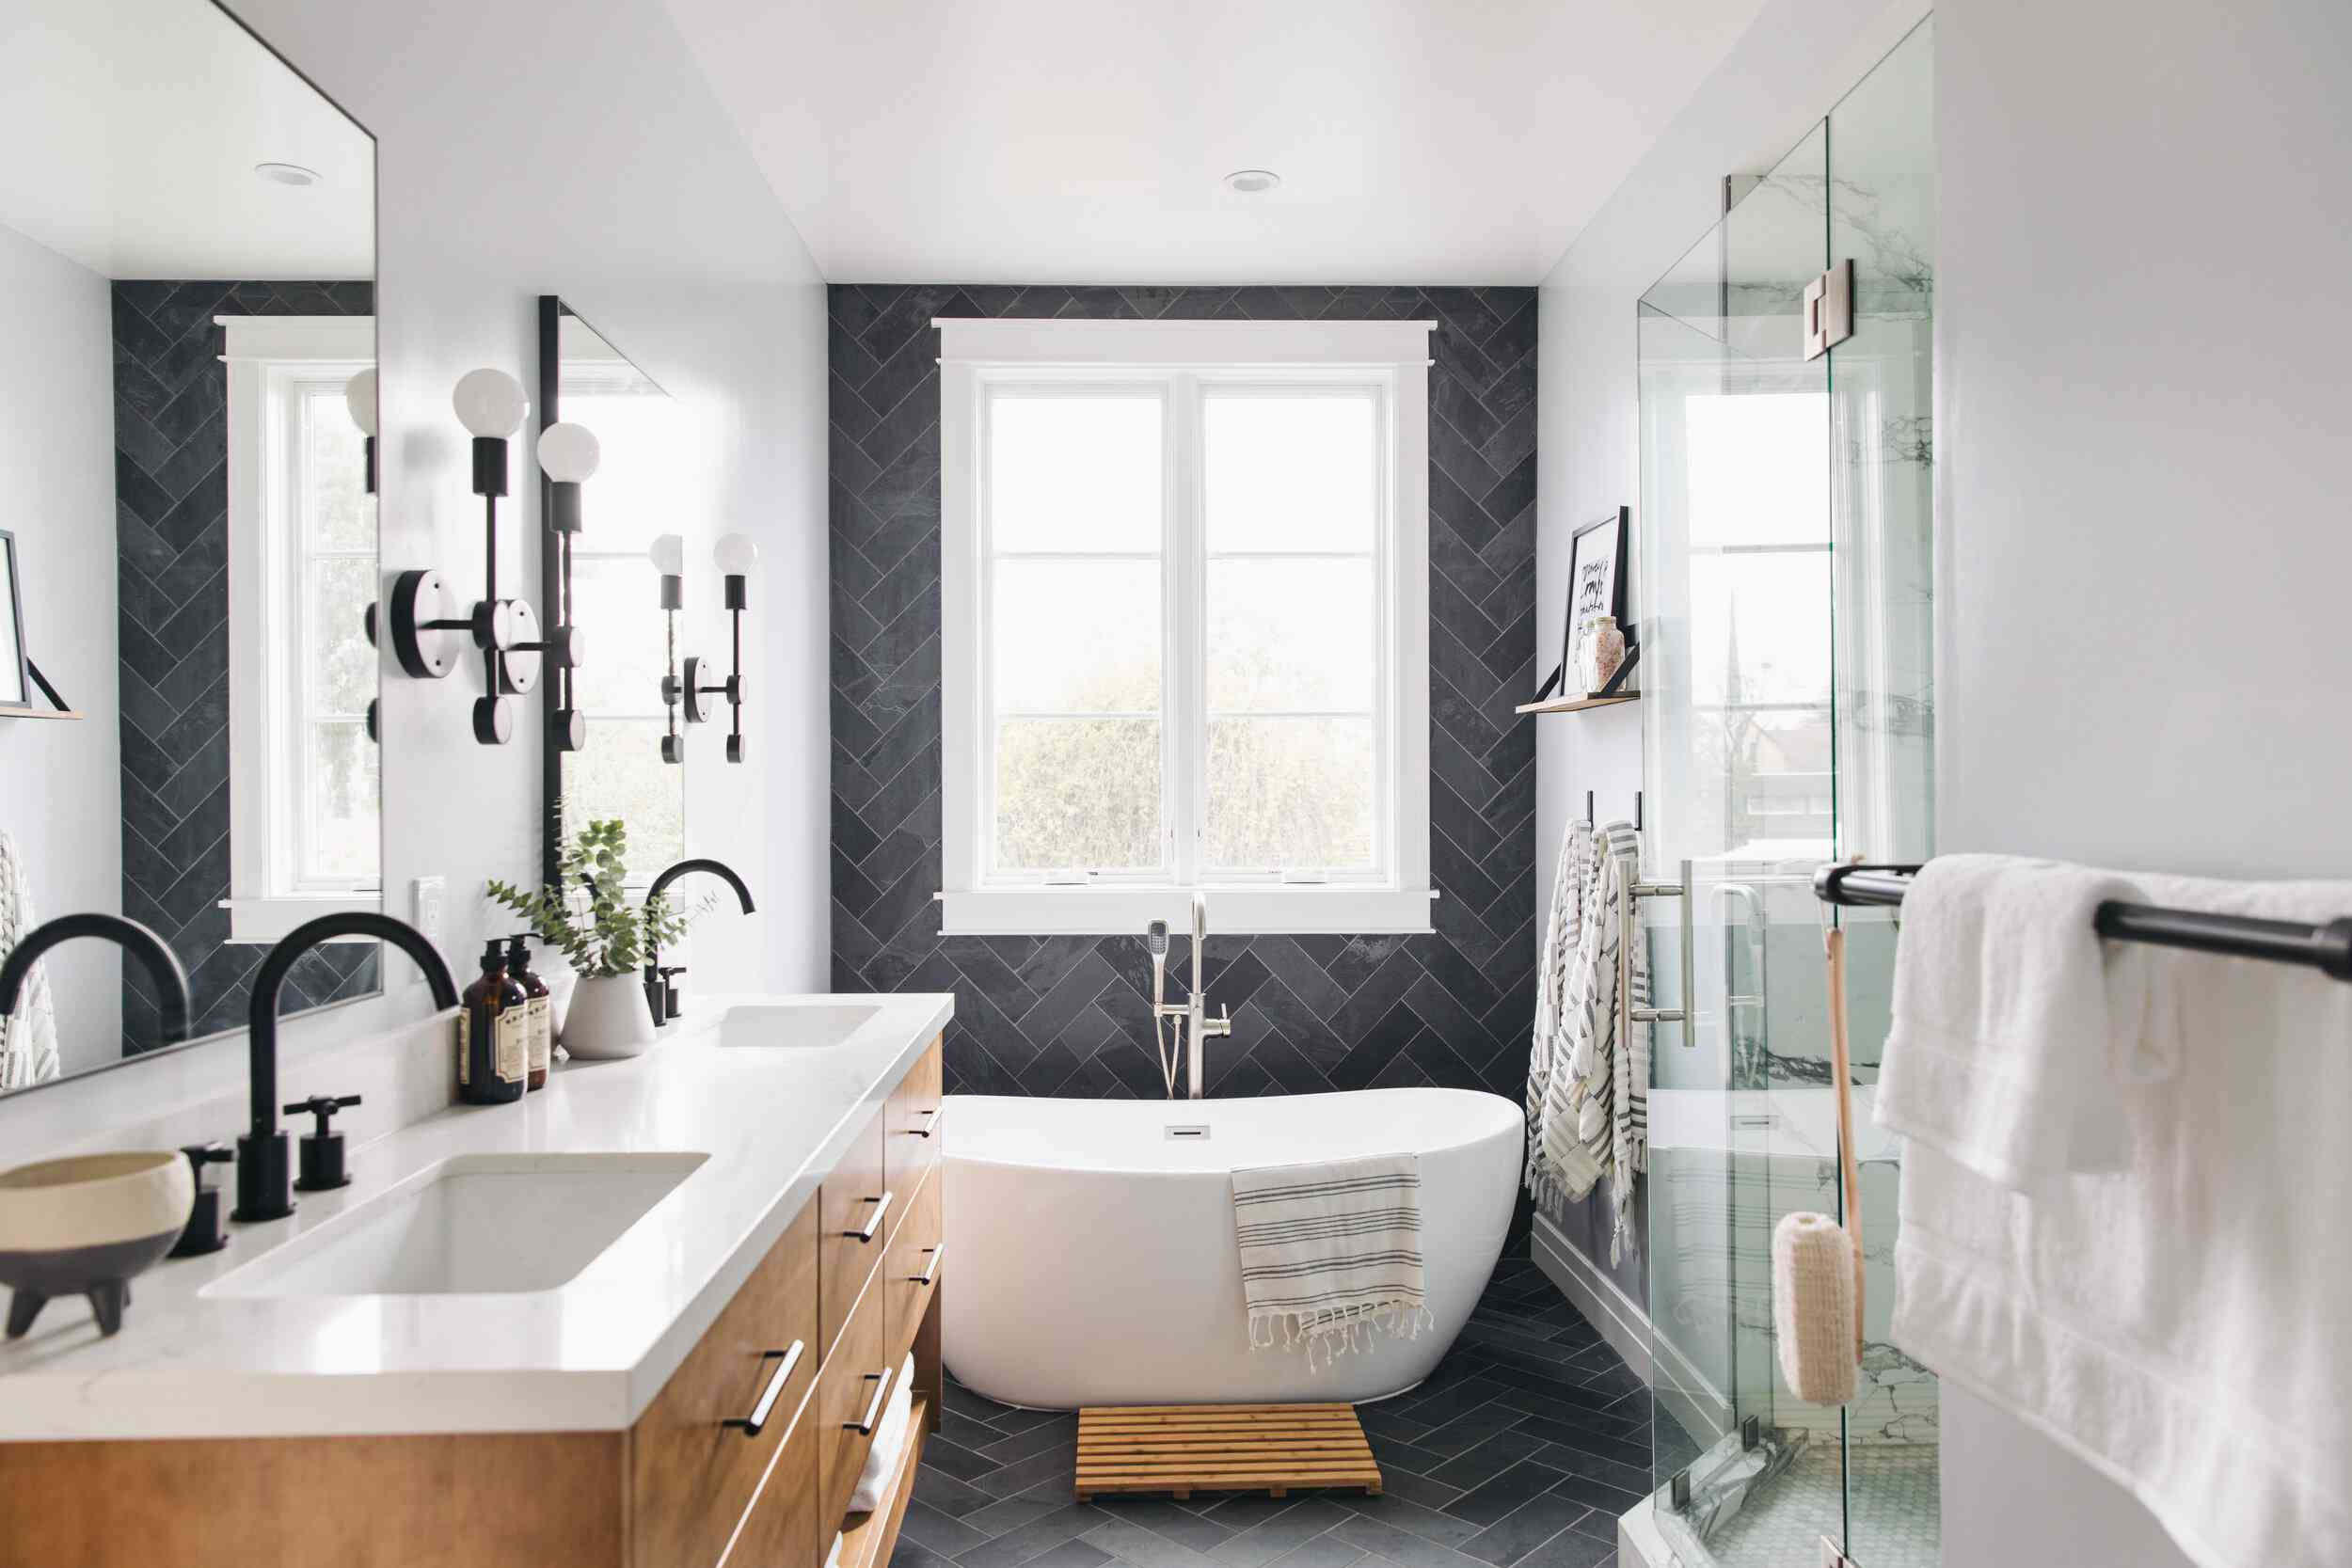 A bathroom with black tile-lined walls, a freestanding tub, and a double vanity